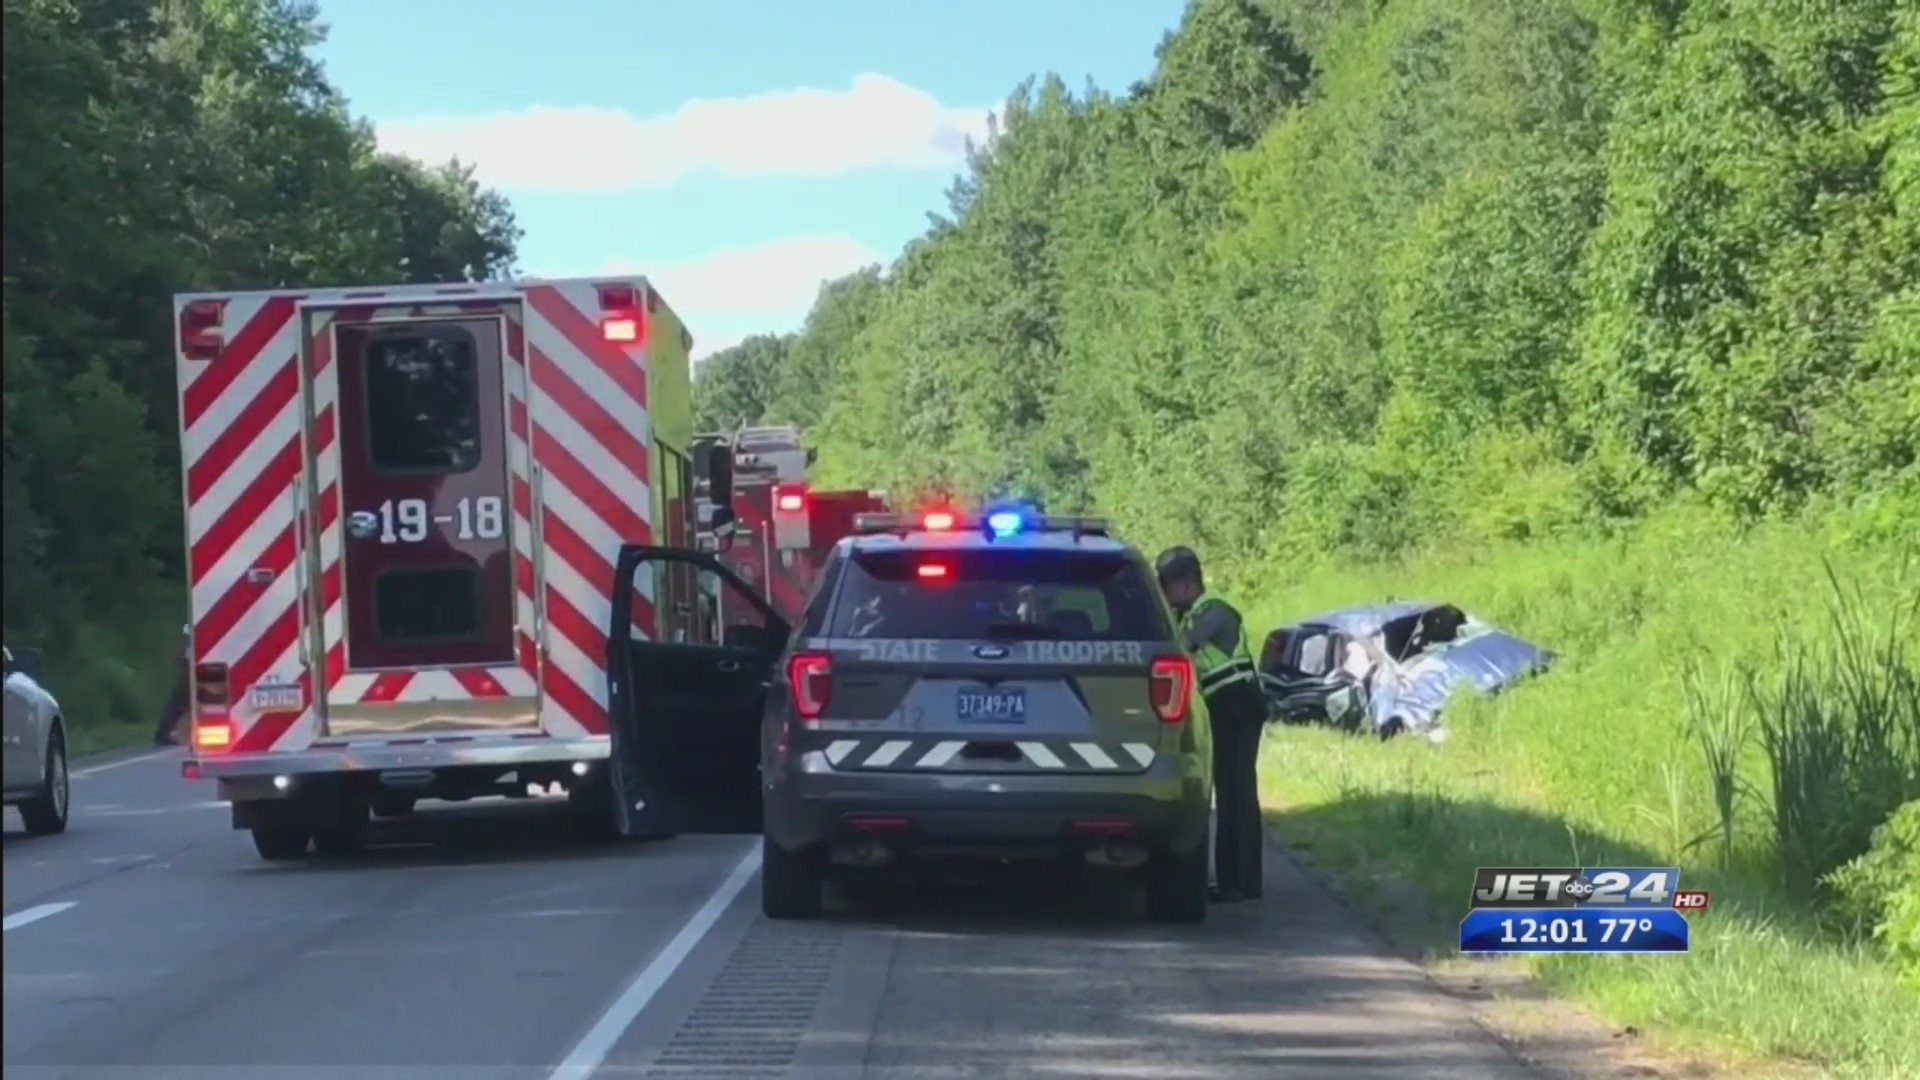 Coroner identifies victims in deadly car accident | WJET/WFXP